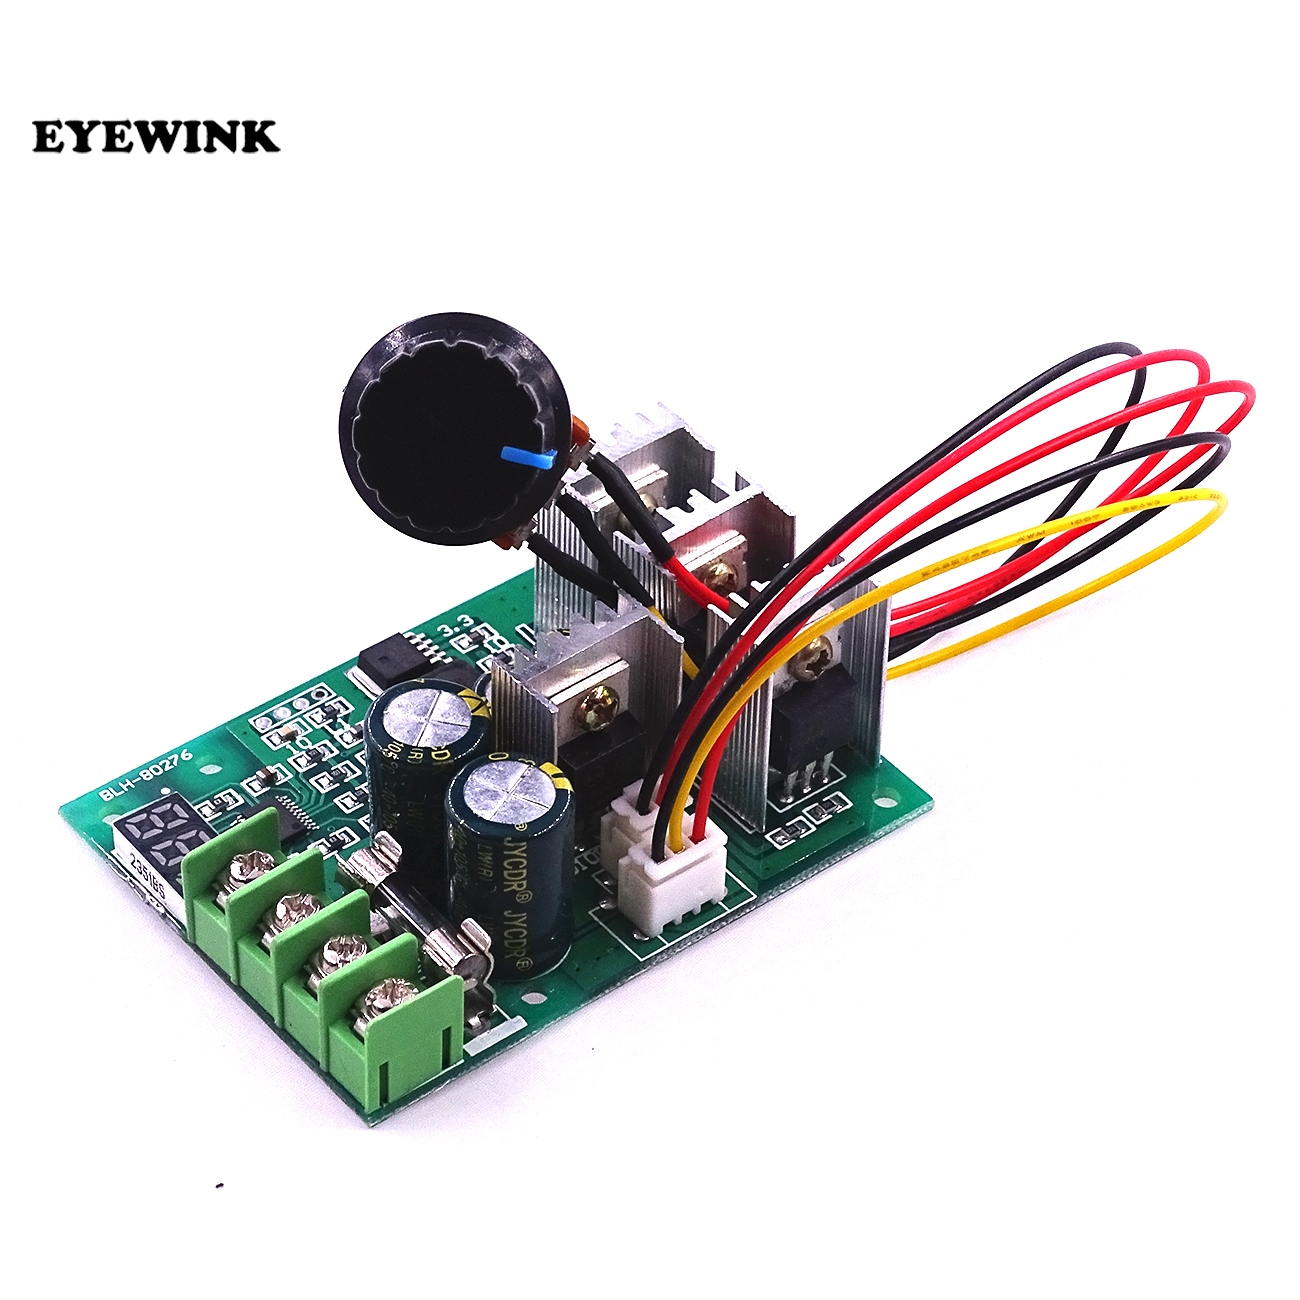 Dedicated Eyewink 5set Dc Motor Speed Controller Digital Display 0~100% Adjustable Drive Module 6v~60v Input Max30a Electronics Production Machinery